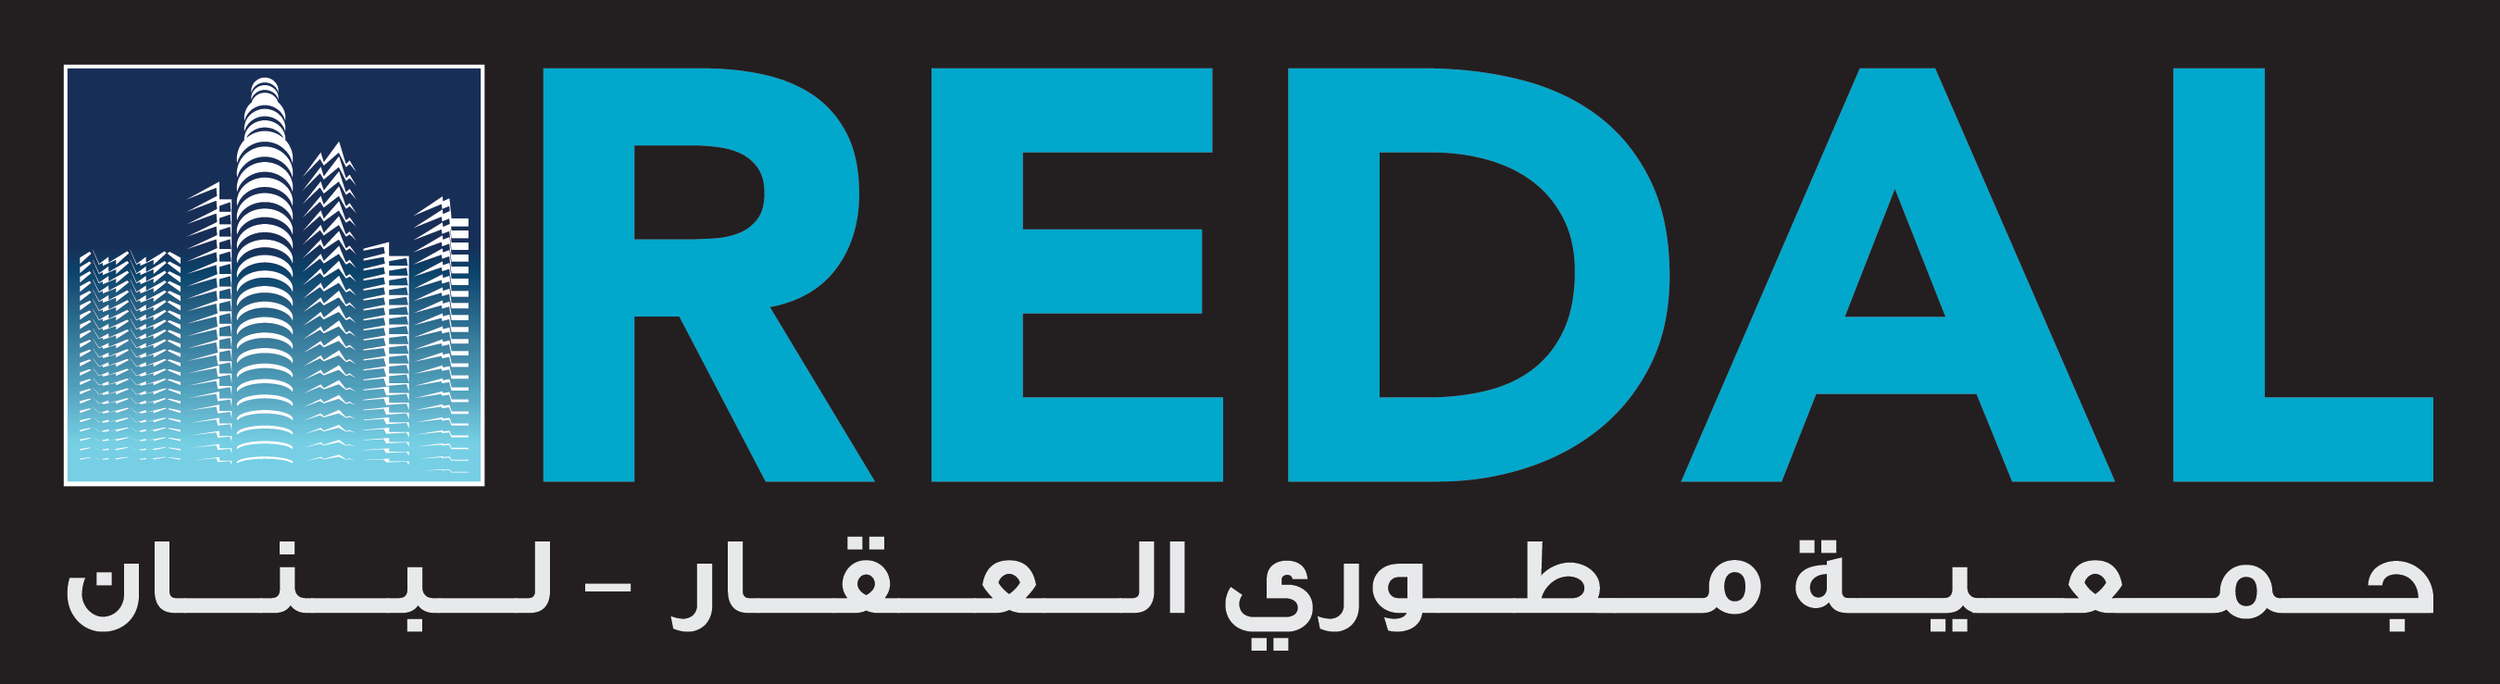 Click on image to download REDAL's logo in illustrator format